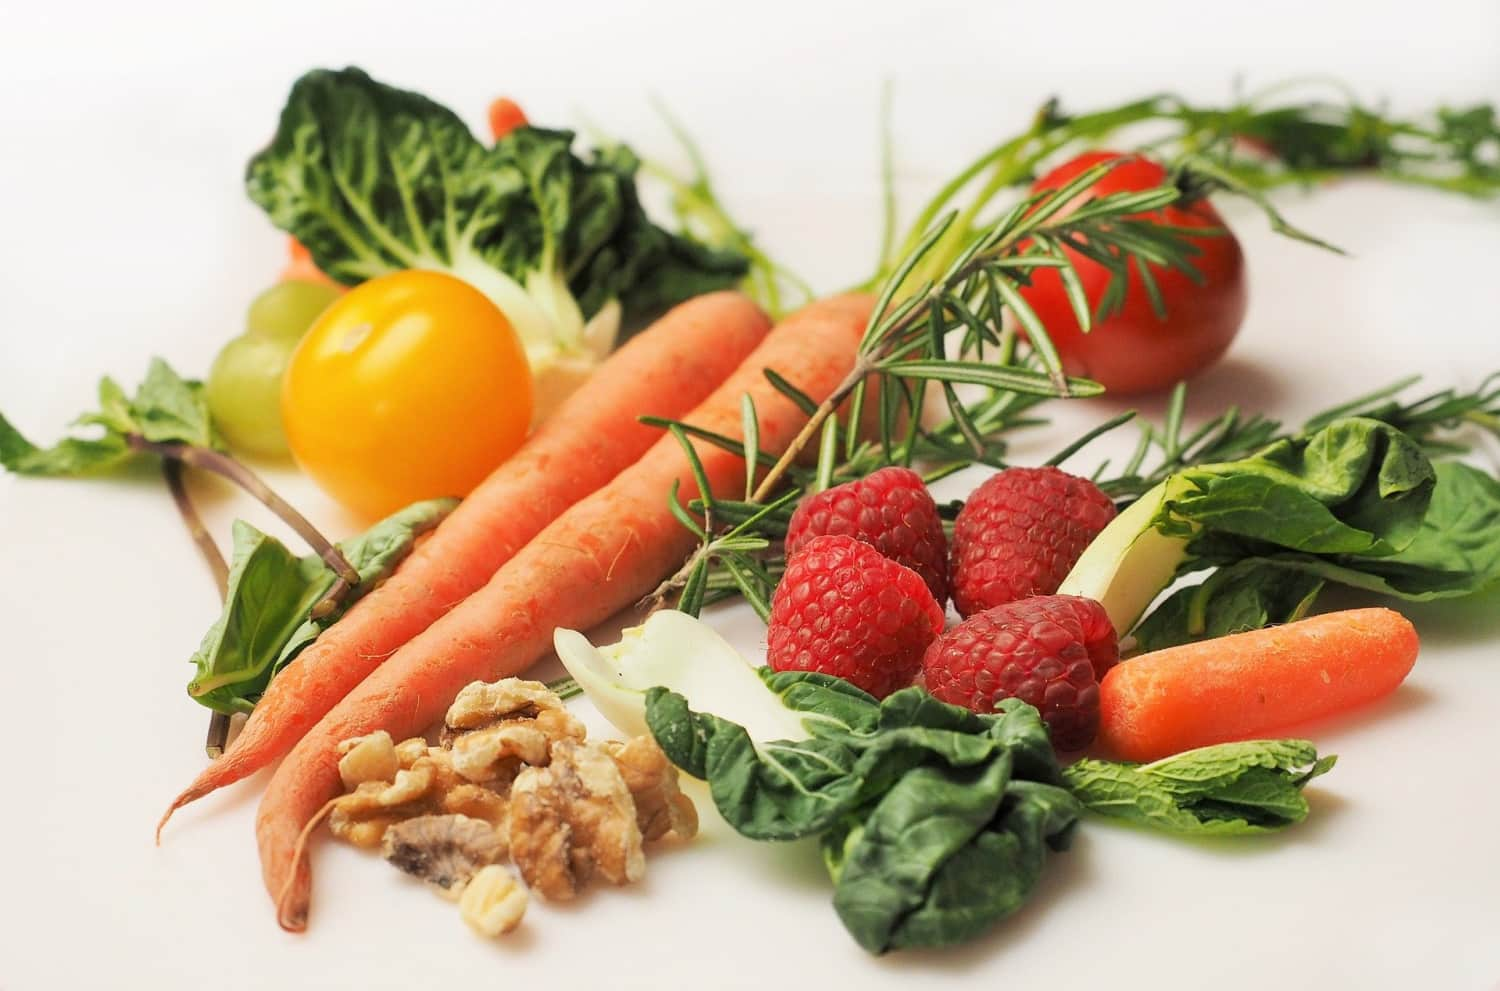 eating a healthy diet with veggies like these is another easy healthy habit